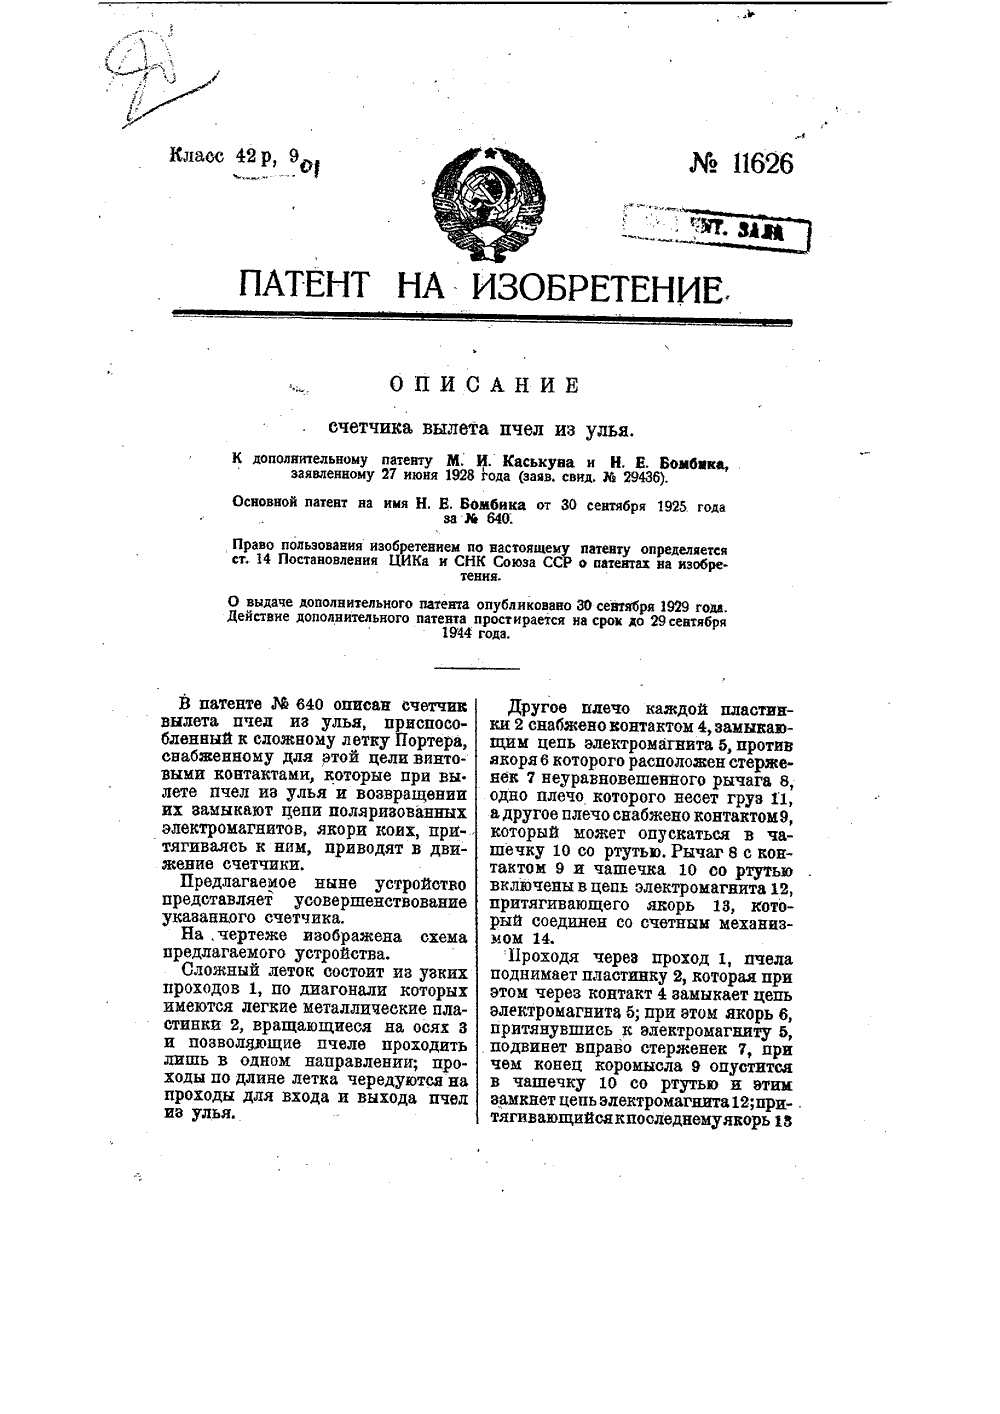 http://patents.su/patents/11626-schetchik-vyleta-pchel-iz-ulya-1.png